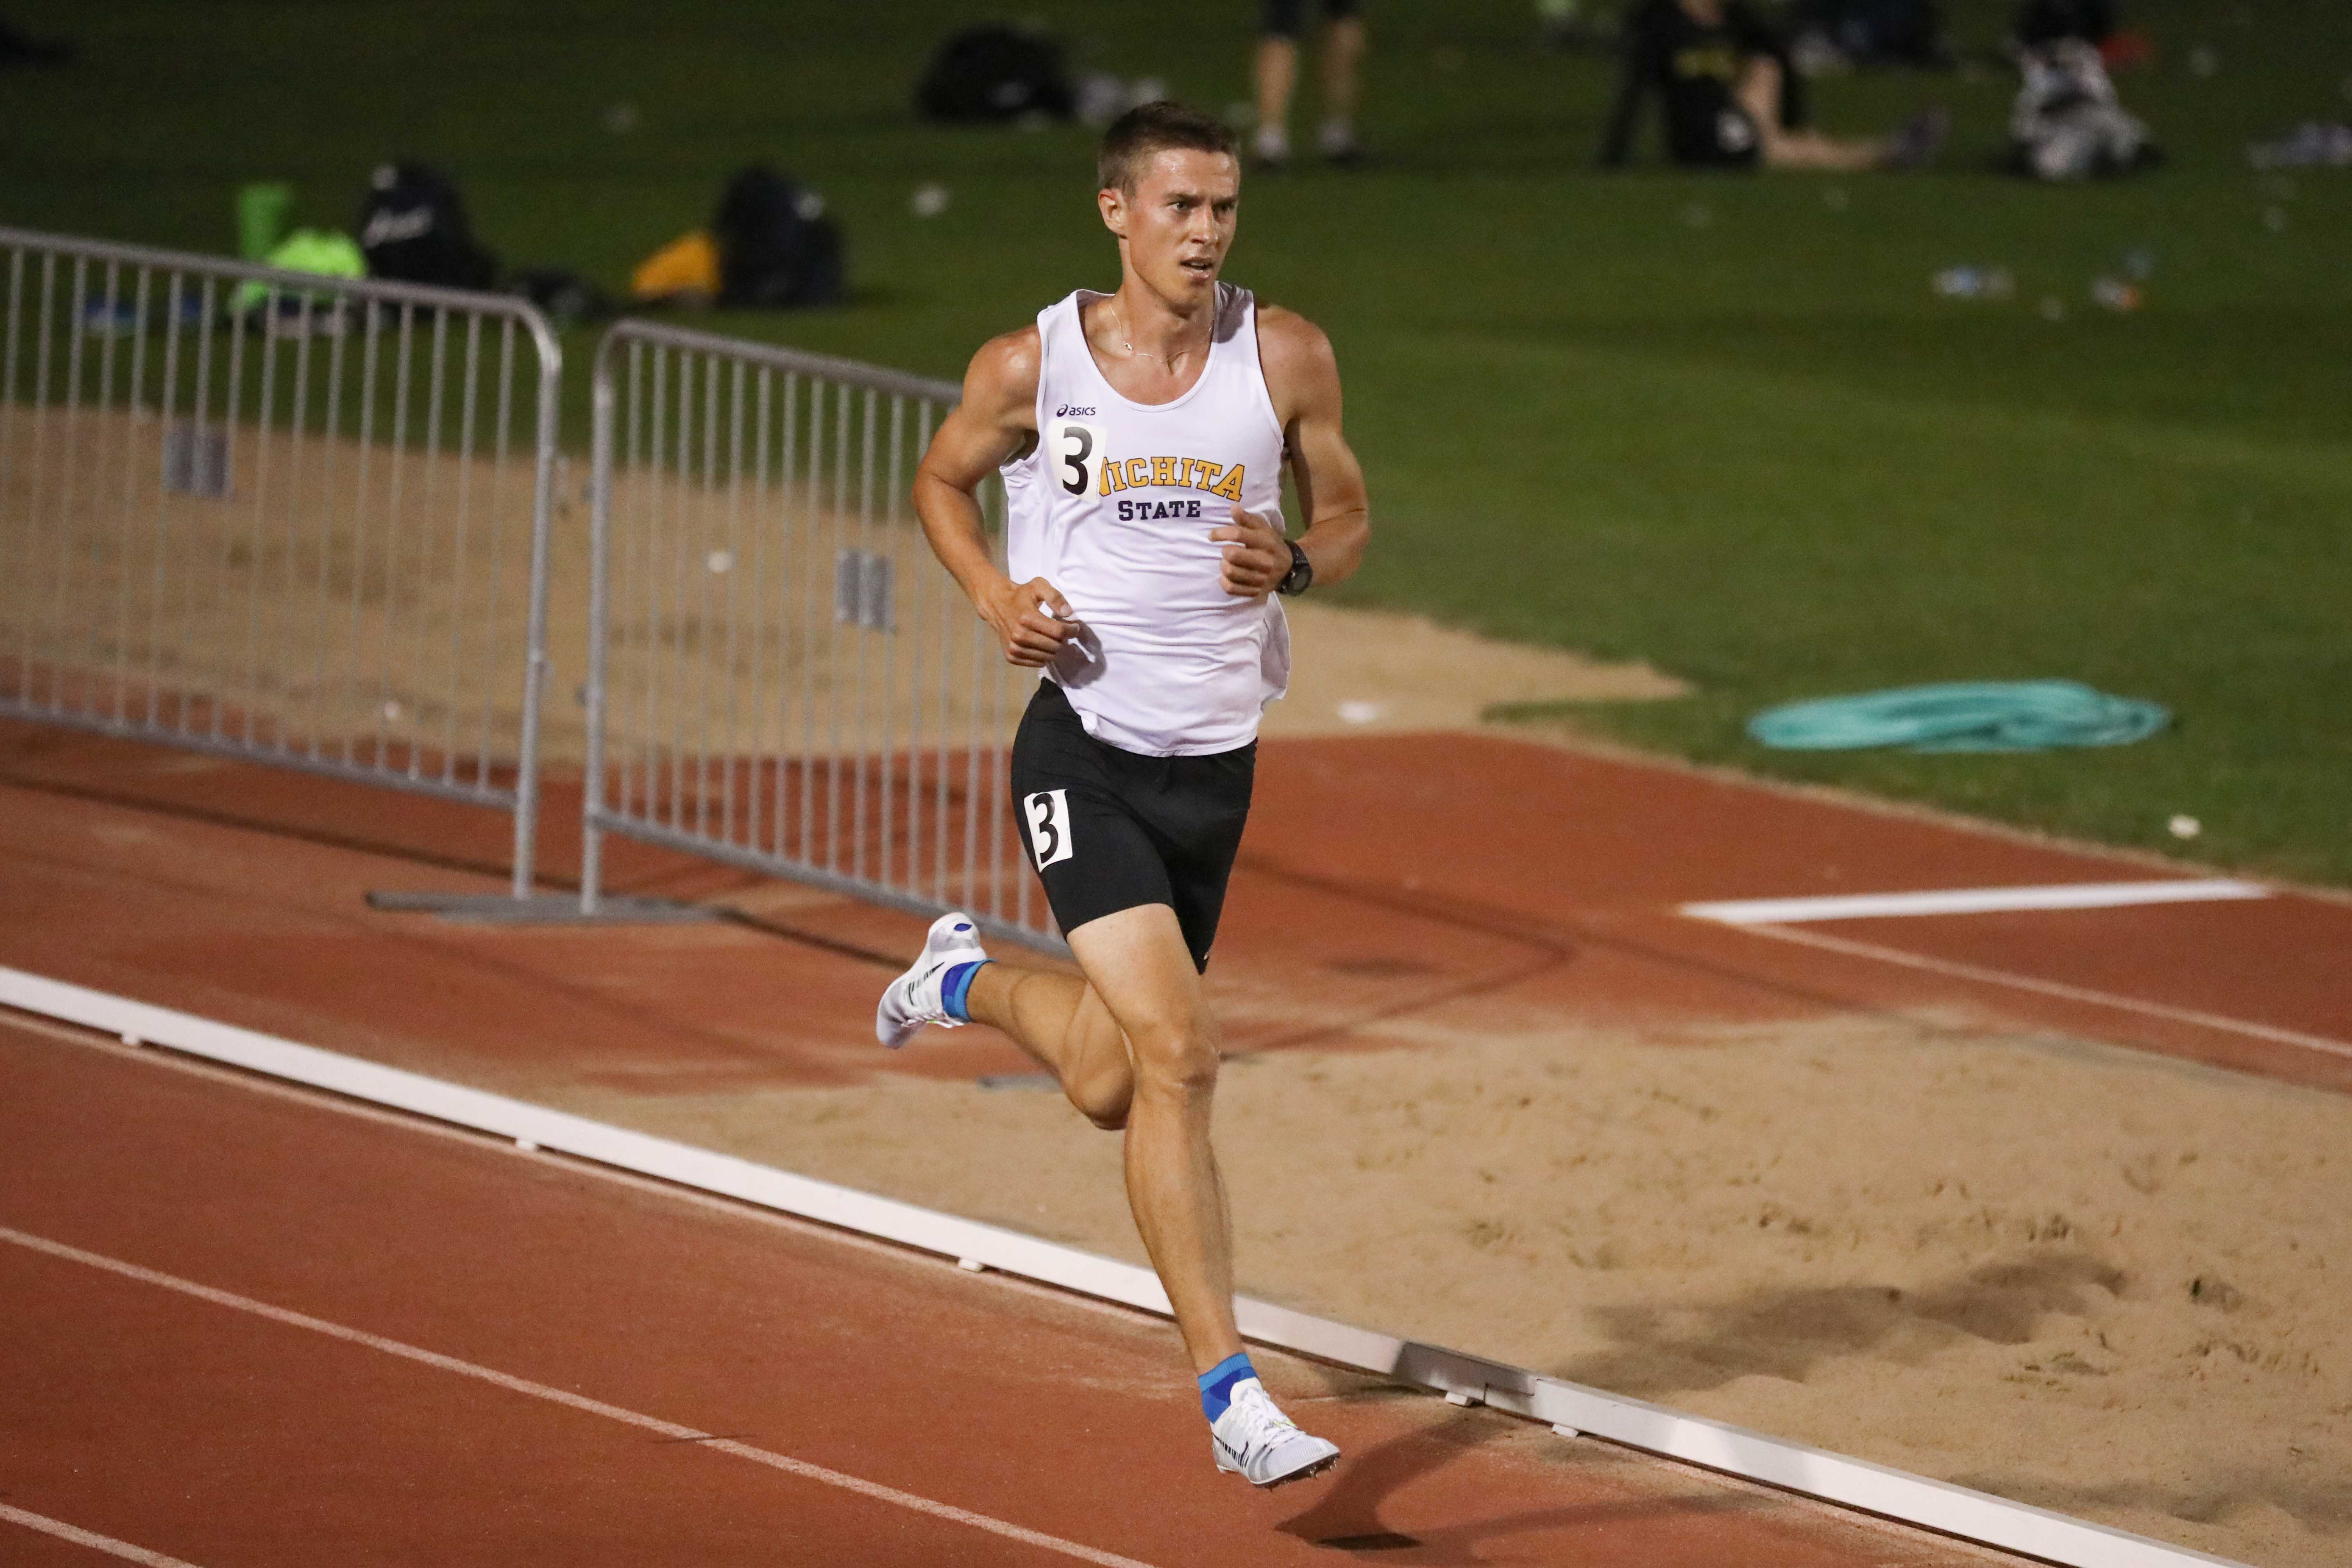 Senior distance runner Ugis Jocis races toward the finish line in the 5,000 meter run at the KT Woodman Classic on Friday night. Jocis won the race and claimed his U.S. personal record with a time of 14:35.55. (Apr. 14, 2017)